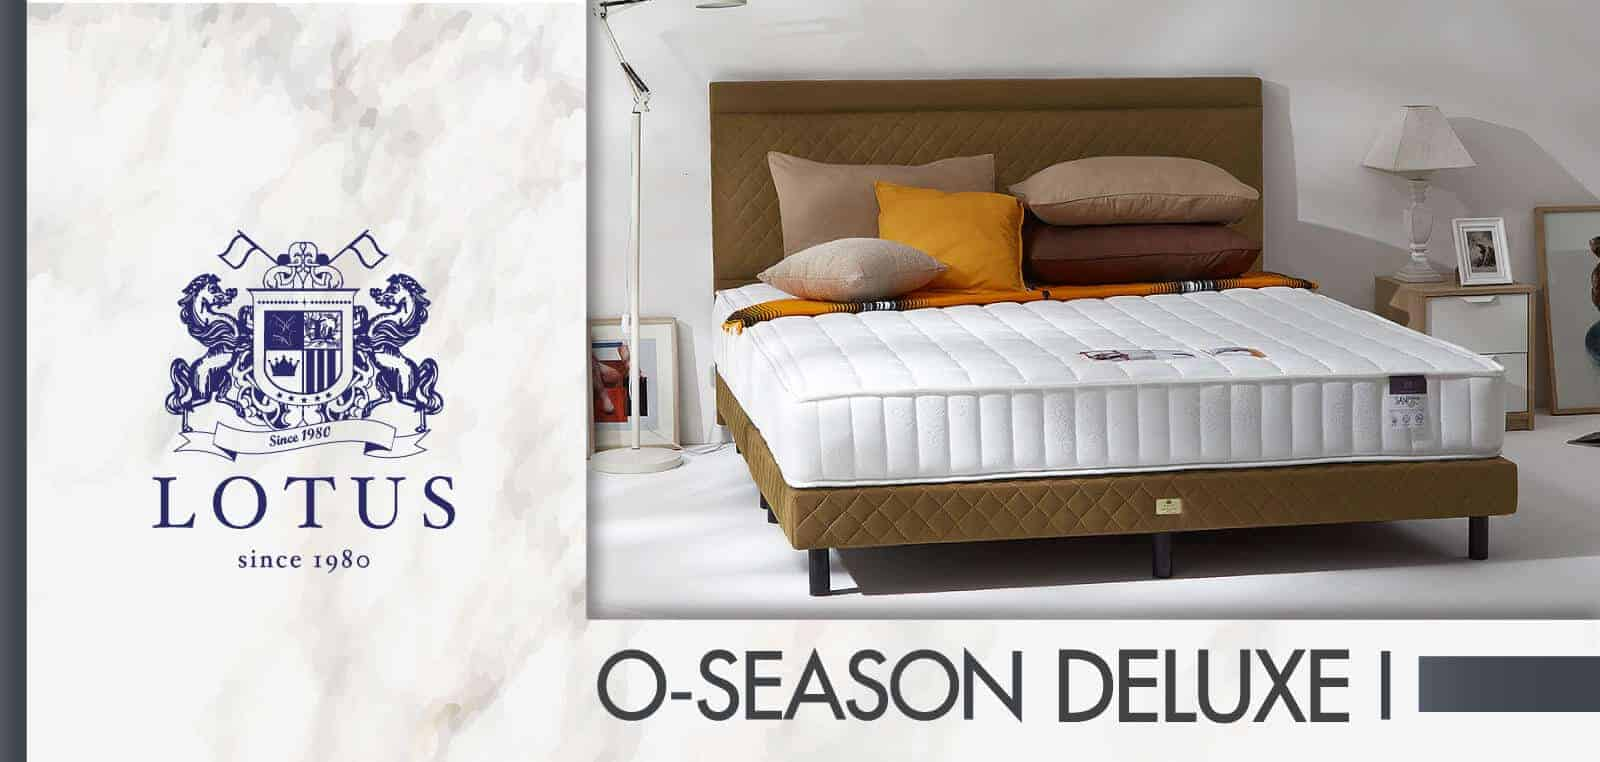 Lotus Mattress - O-Season Deluxe I 6